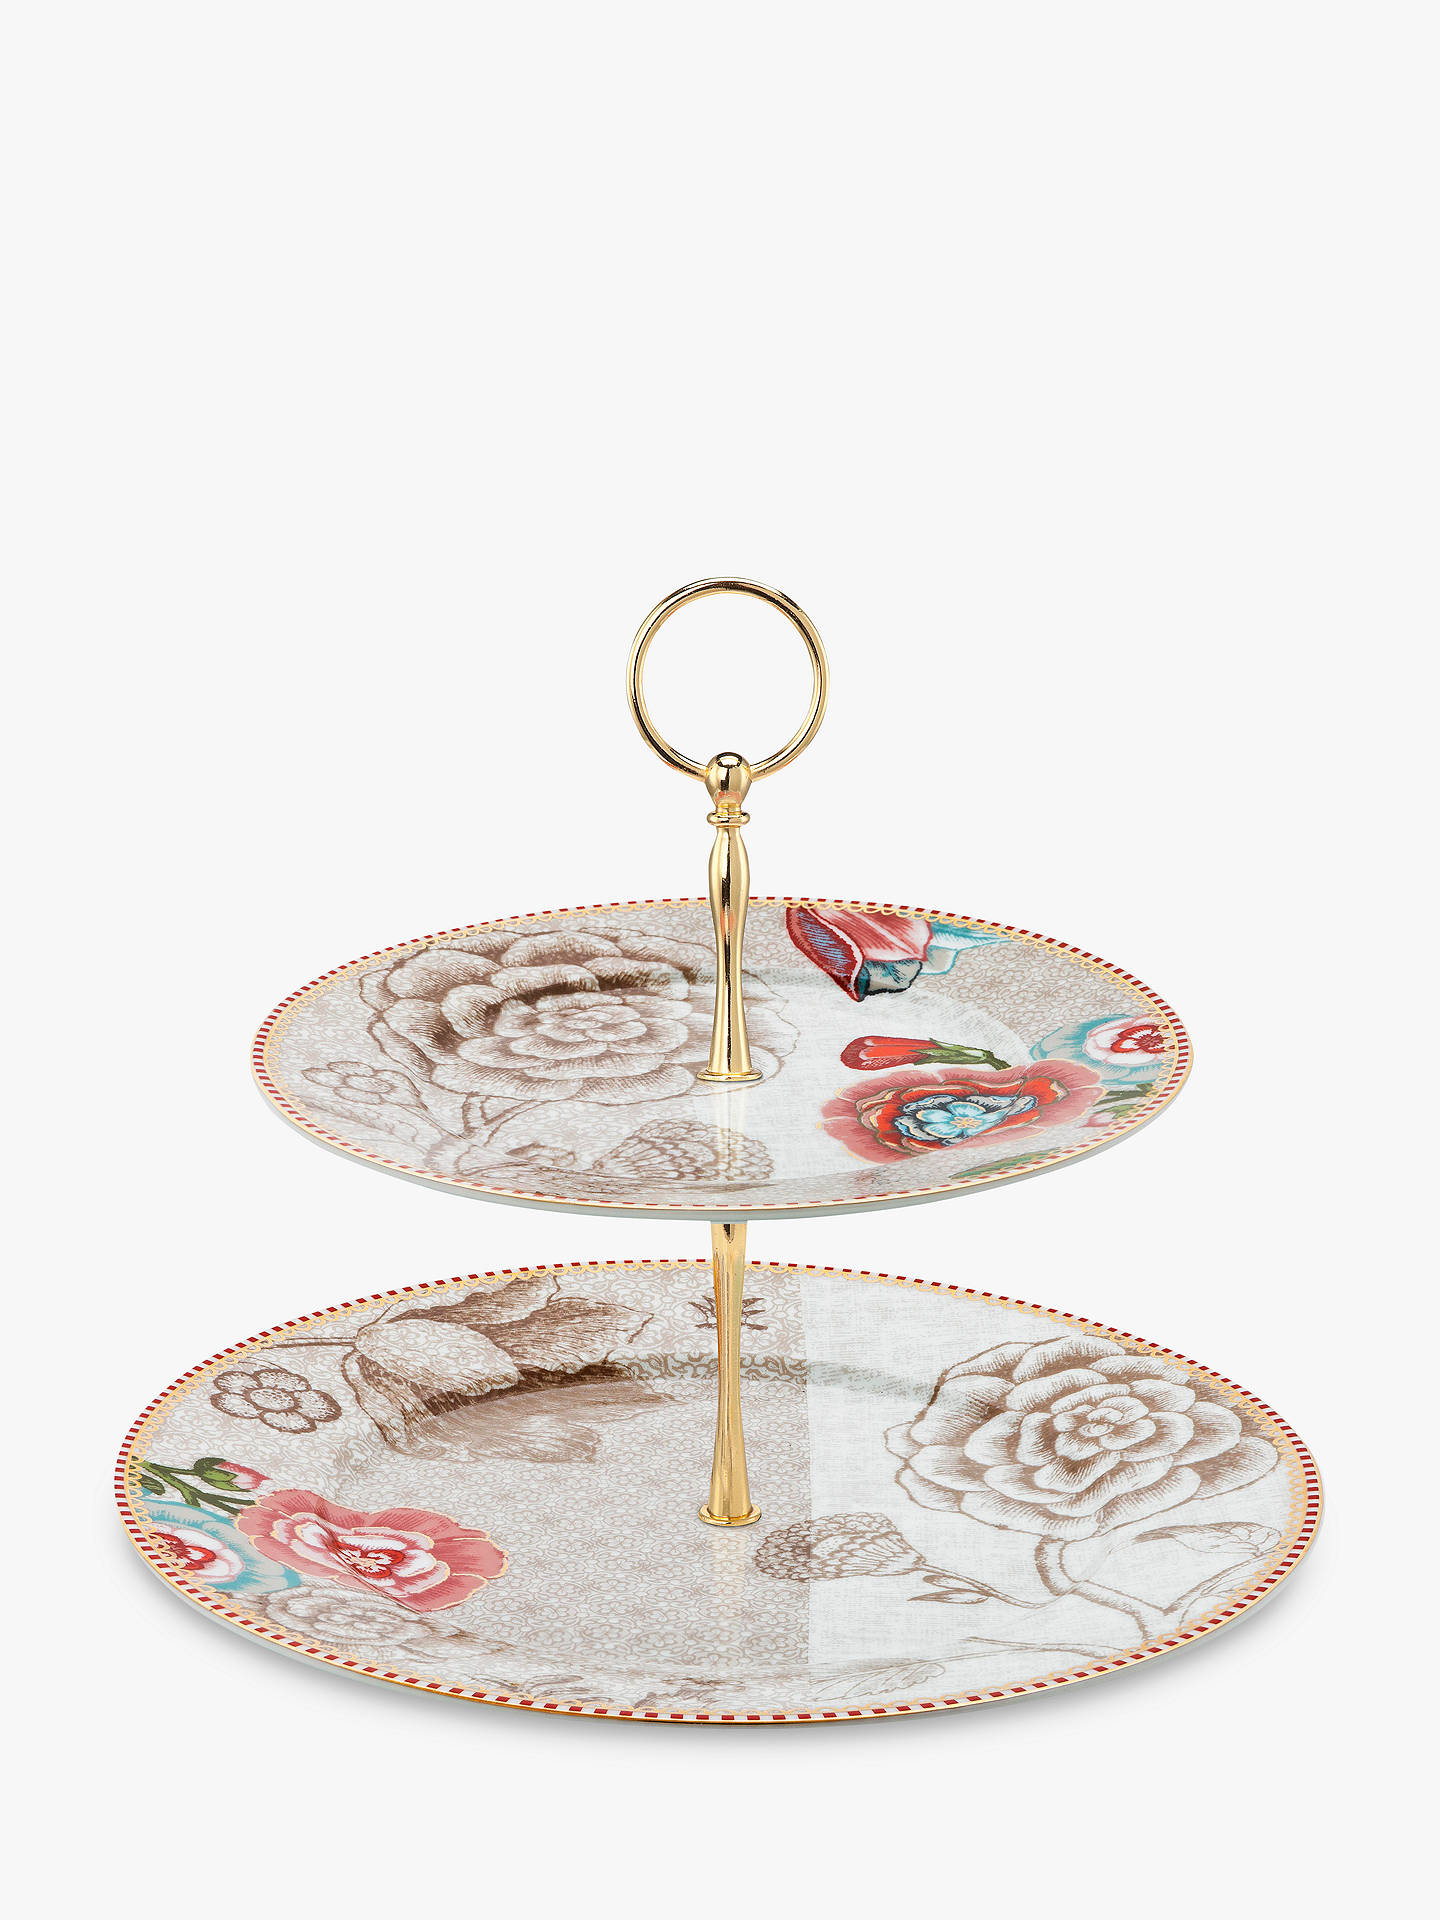 BuyPiP Studio Spring to Life 2 Tier Cake Stand, Natural Online at johnlewis.com